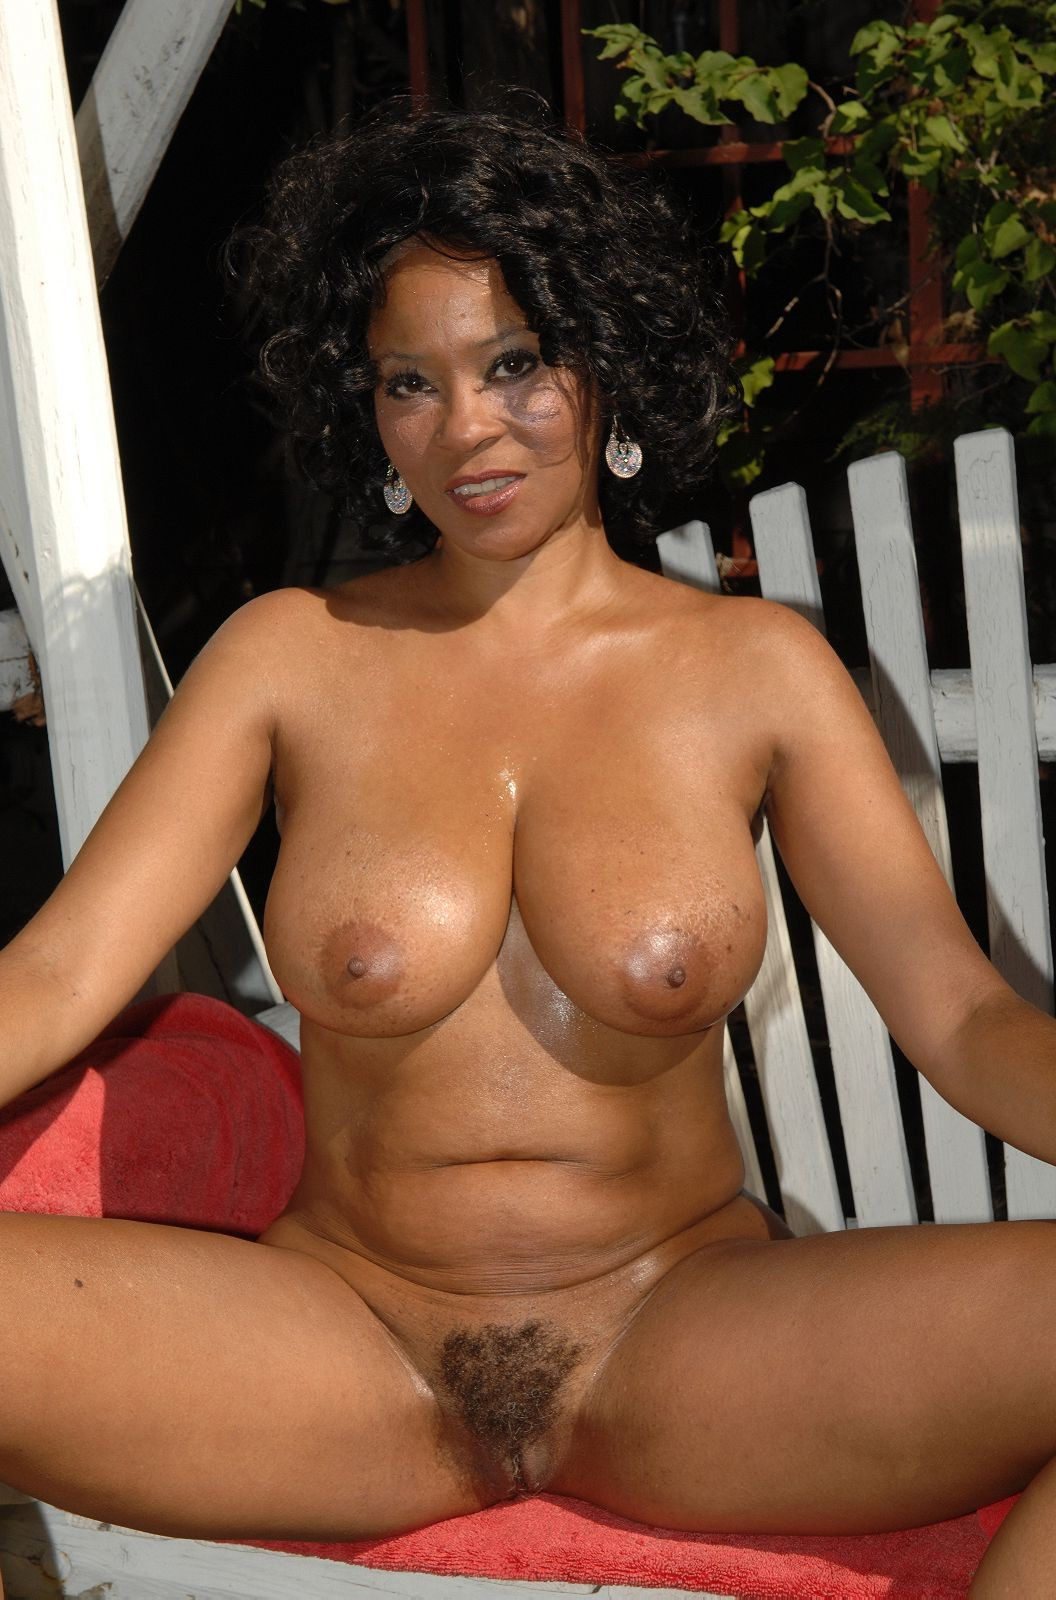 Archive Of Old Women Amateur Black Women Mix Pics-6958